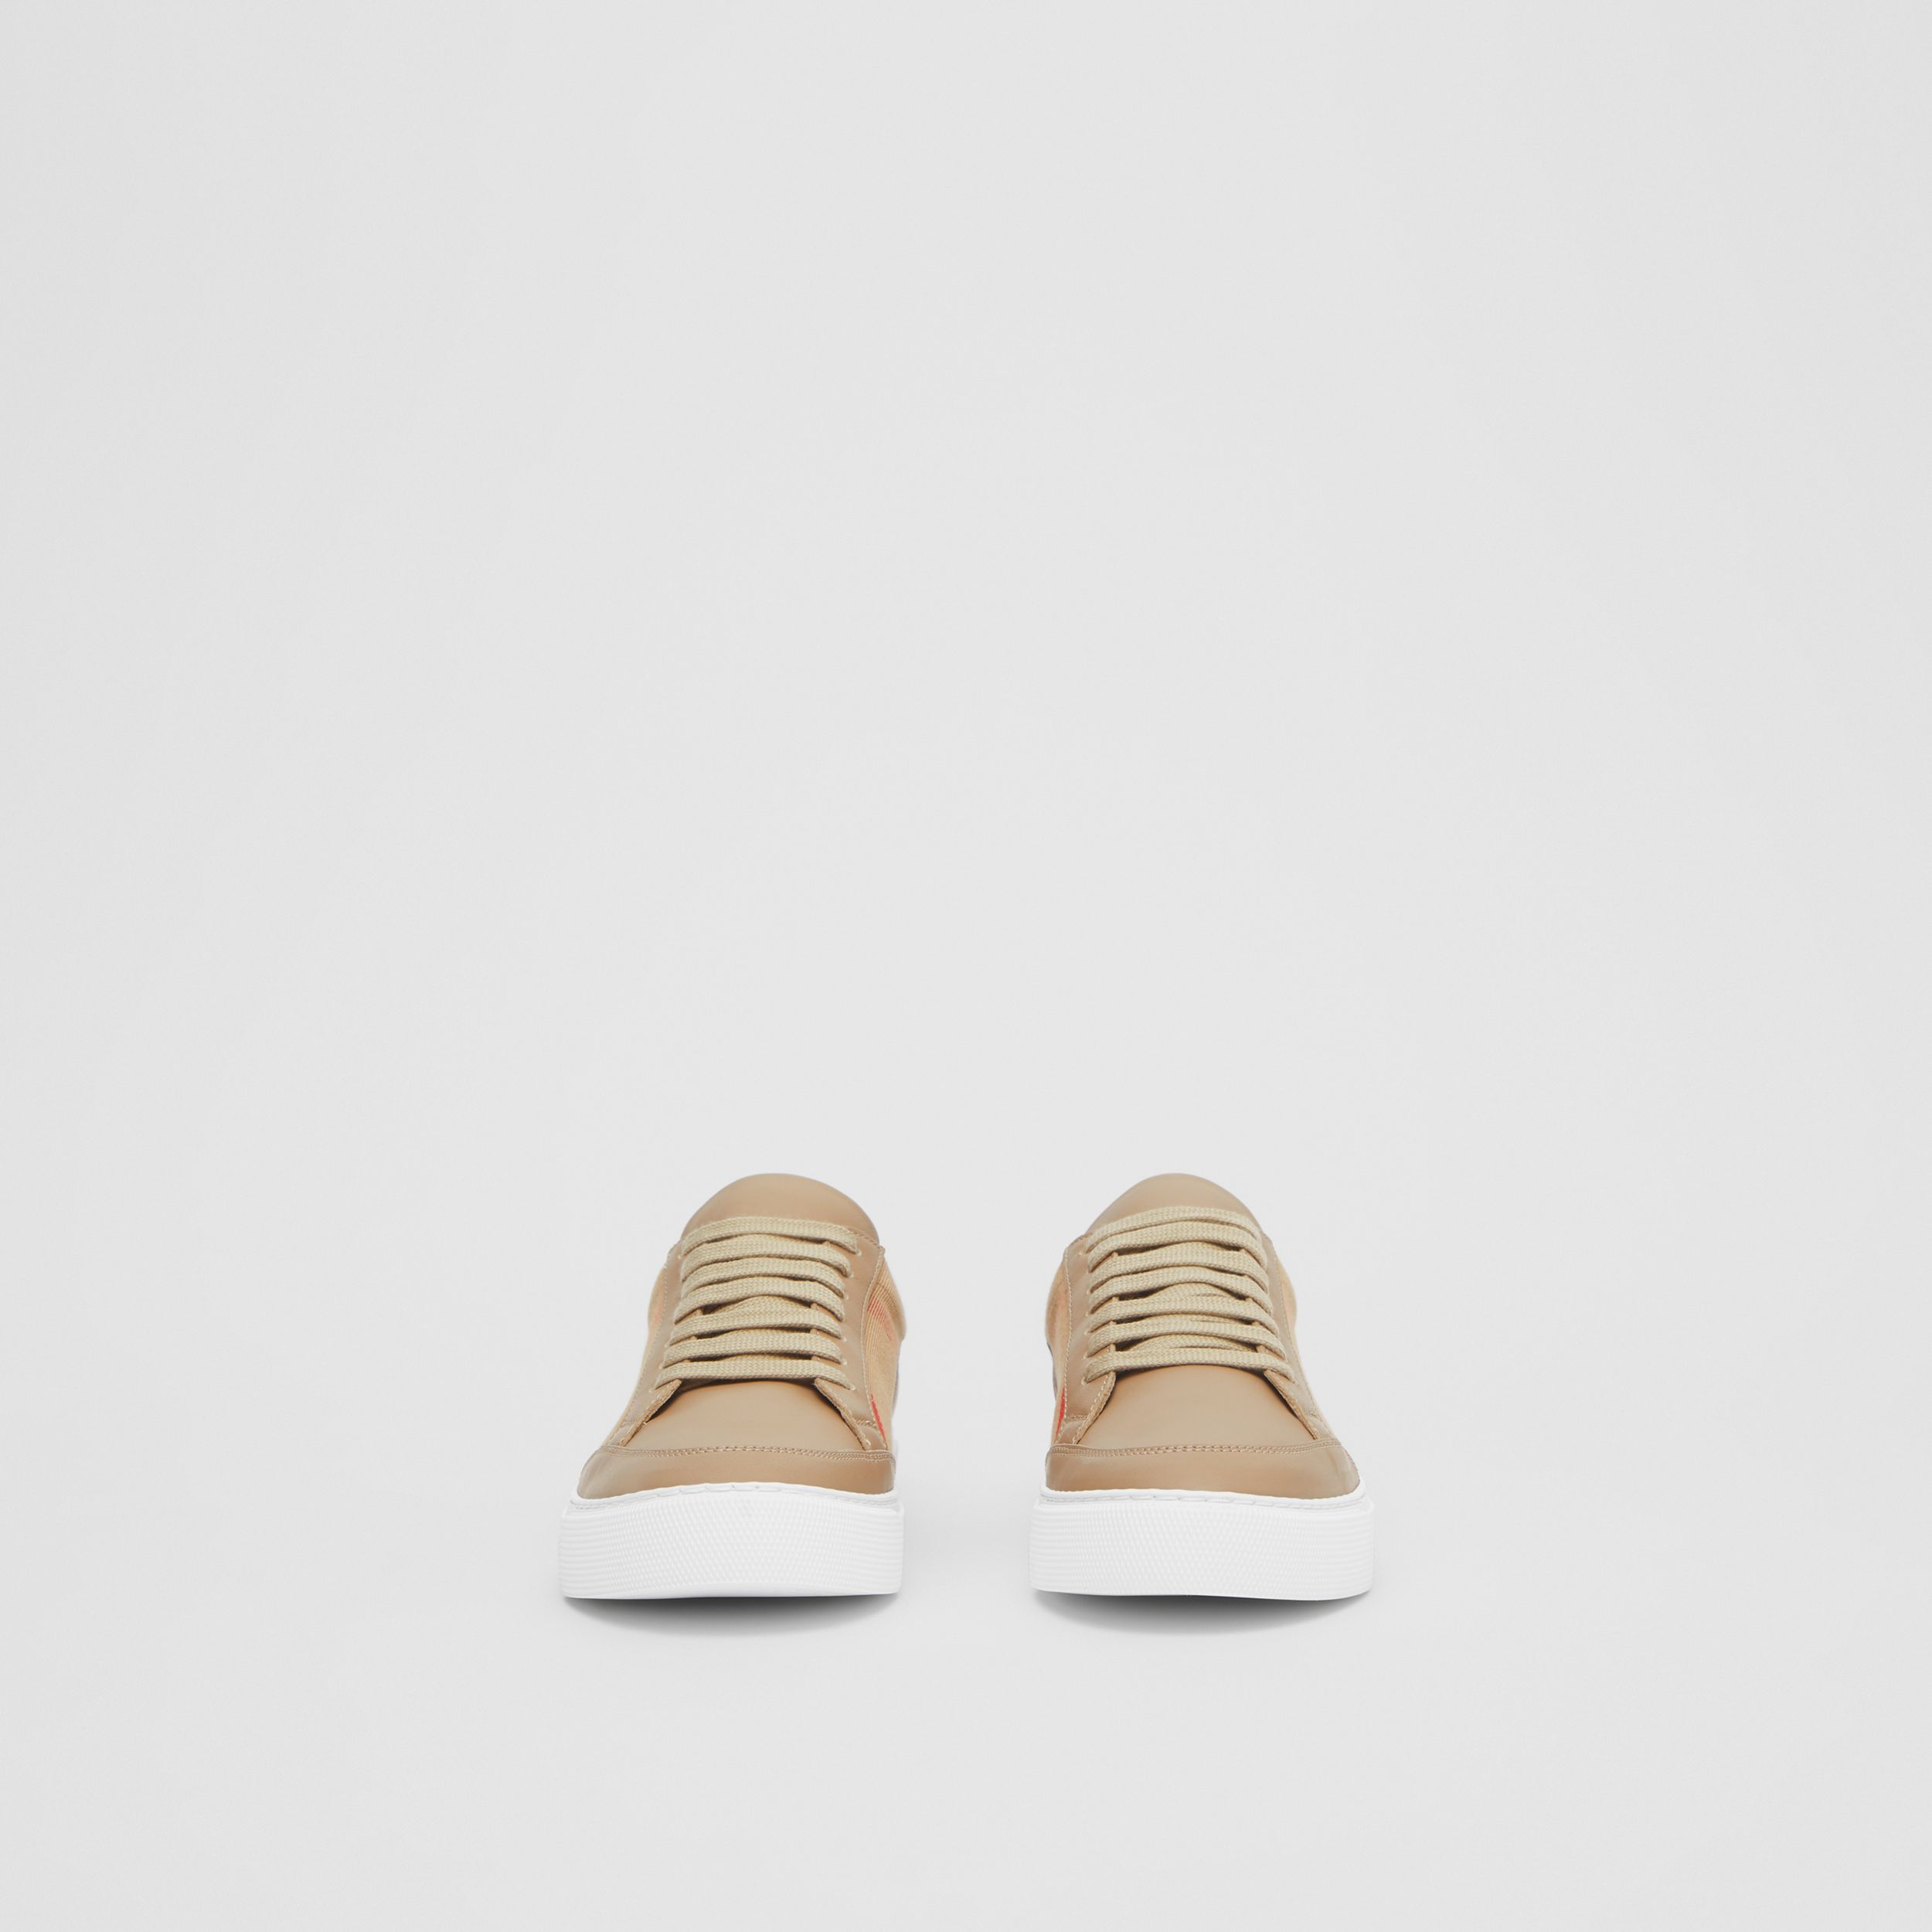 House Check and Leather Sneakers in Tan - Women | Burberry Australia - 4